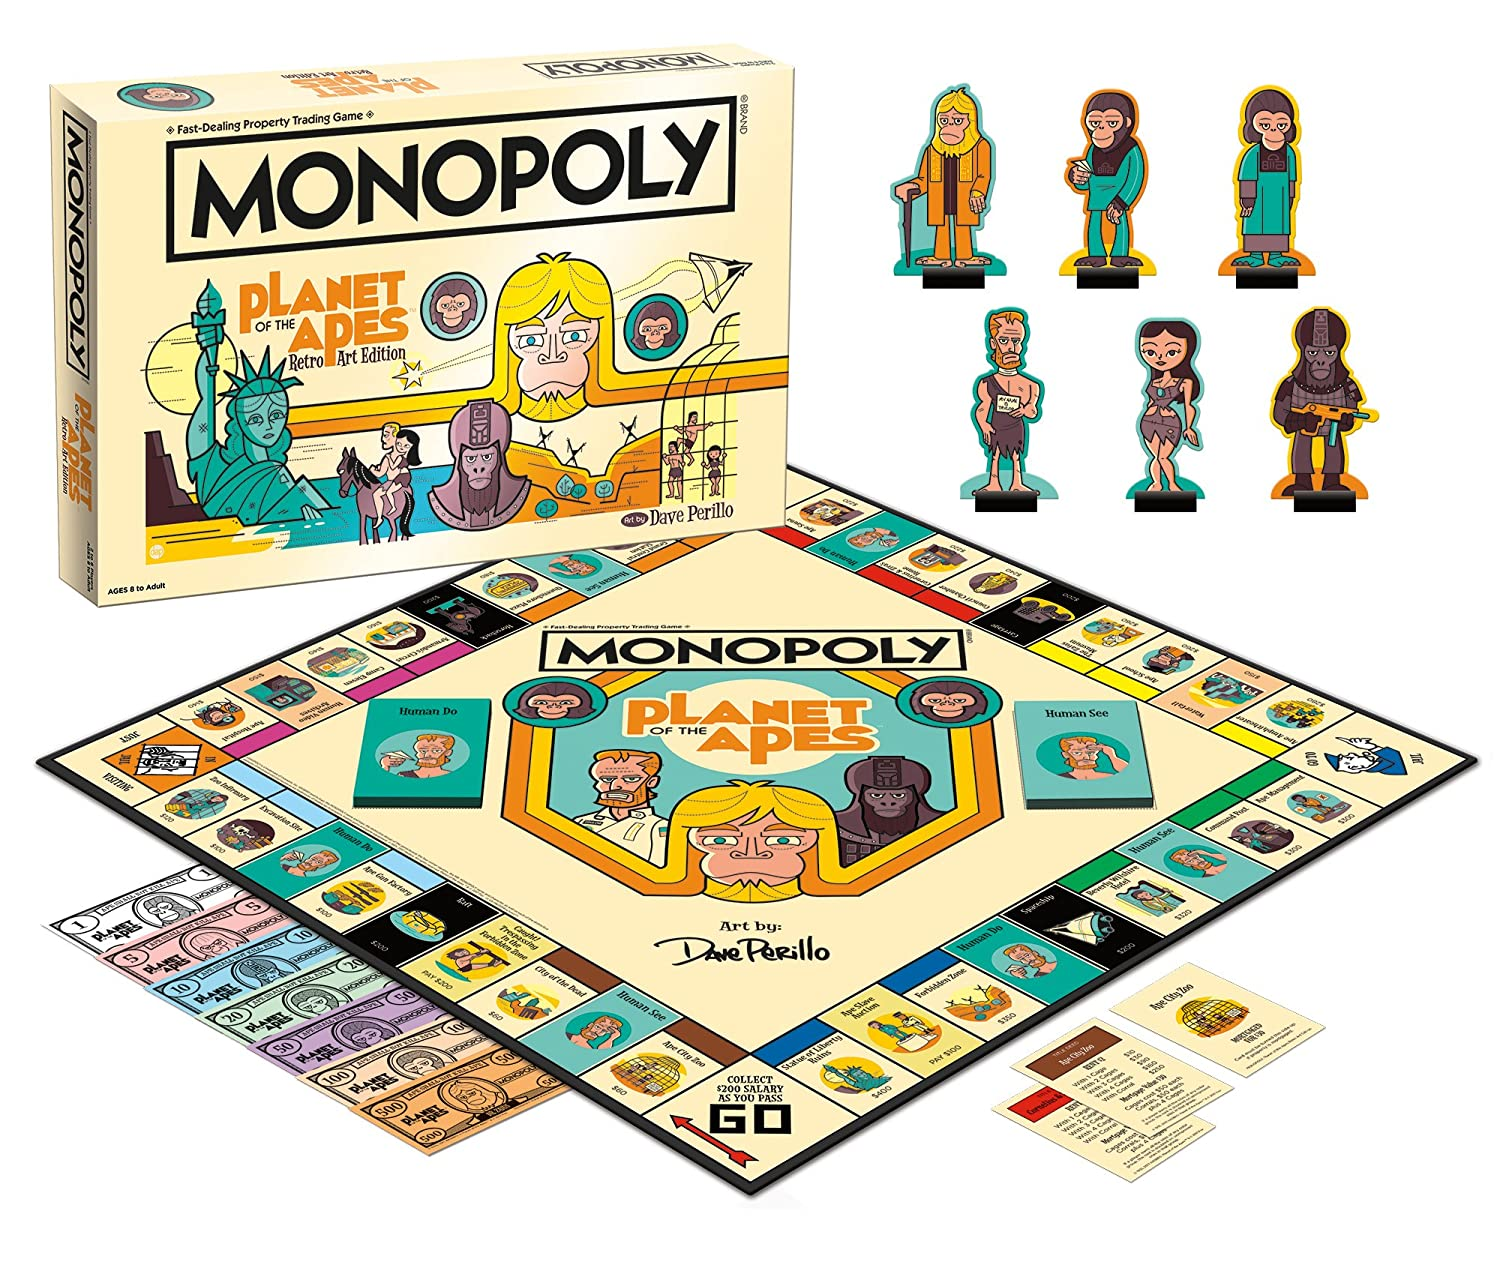 USAopoly MN006 513 Monopoly: Planet of the Apes Board Game, Multicolor